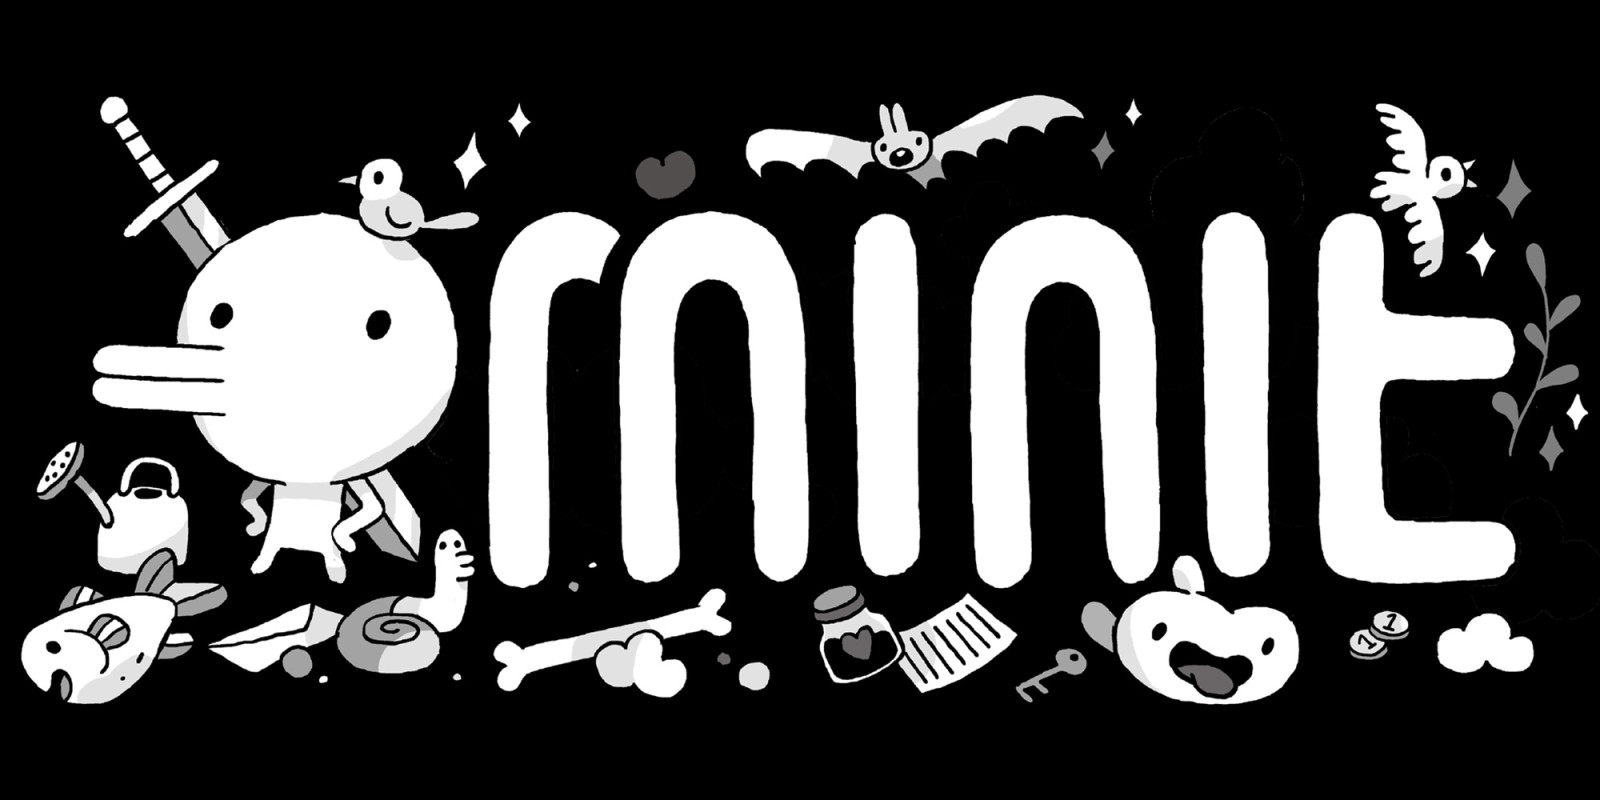 Devolver Digital's 60-second adventure game Minit is available for pre-registration on the Play Store